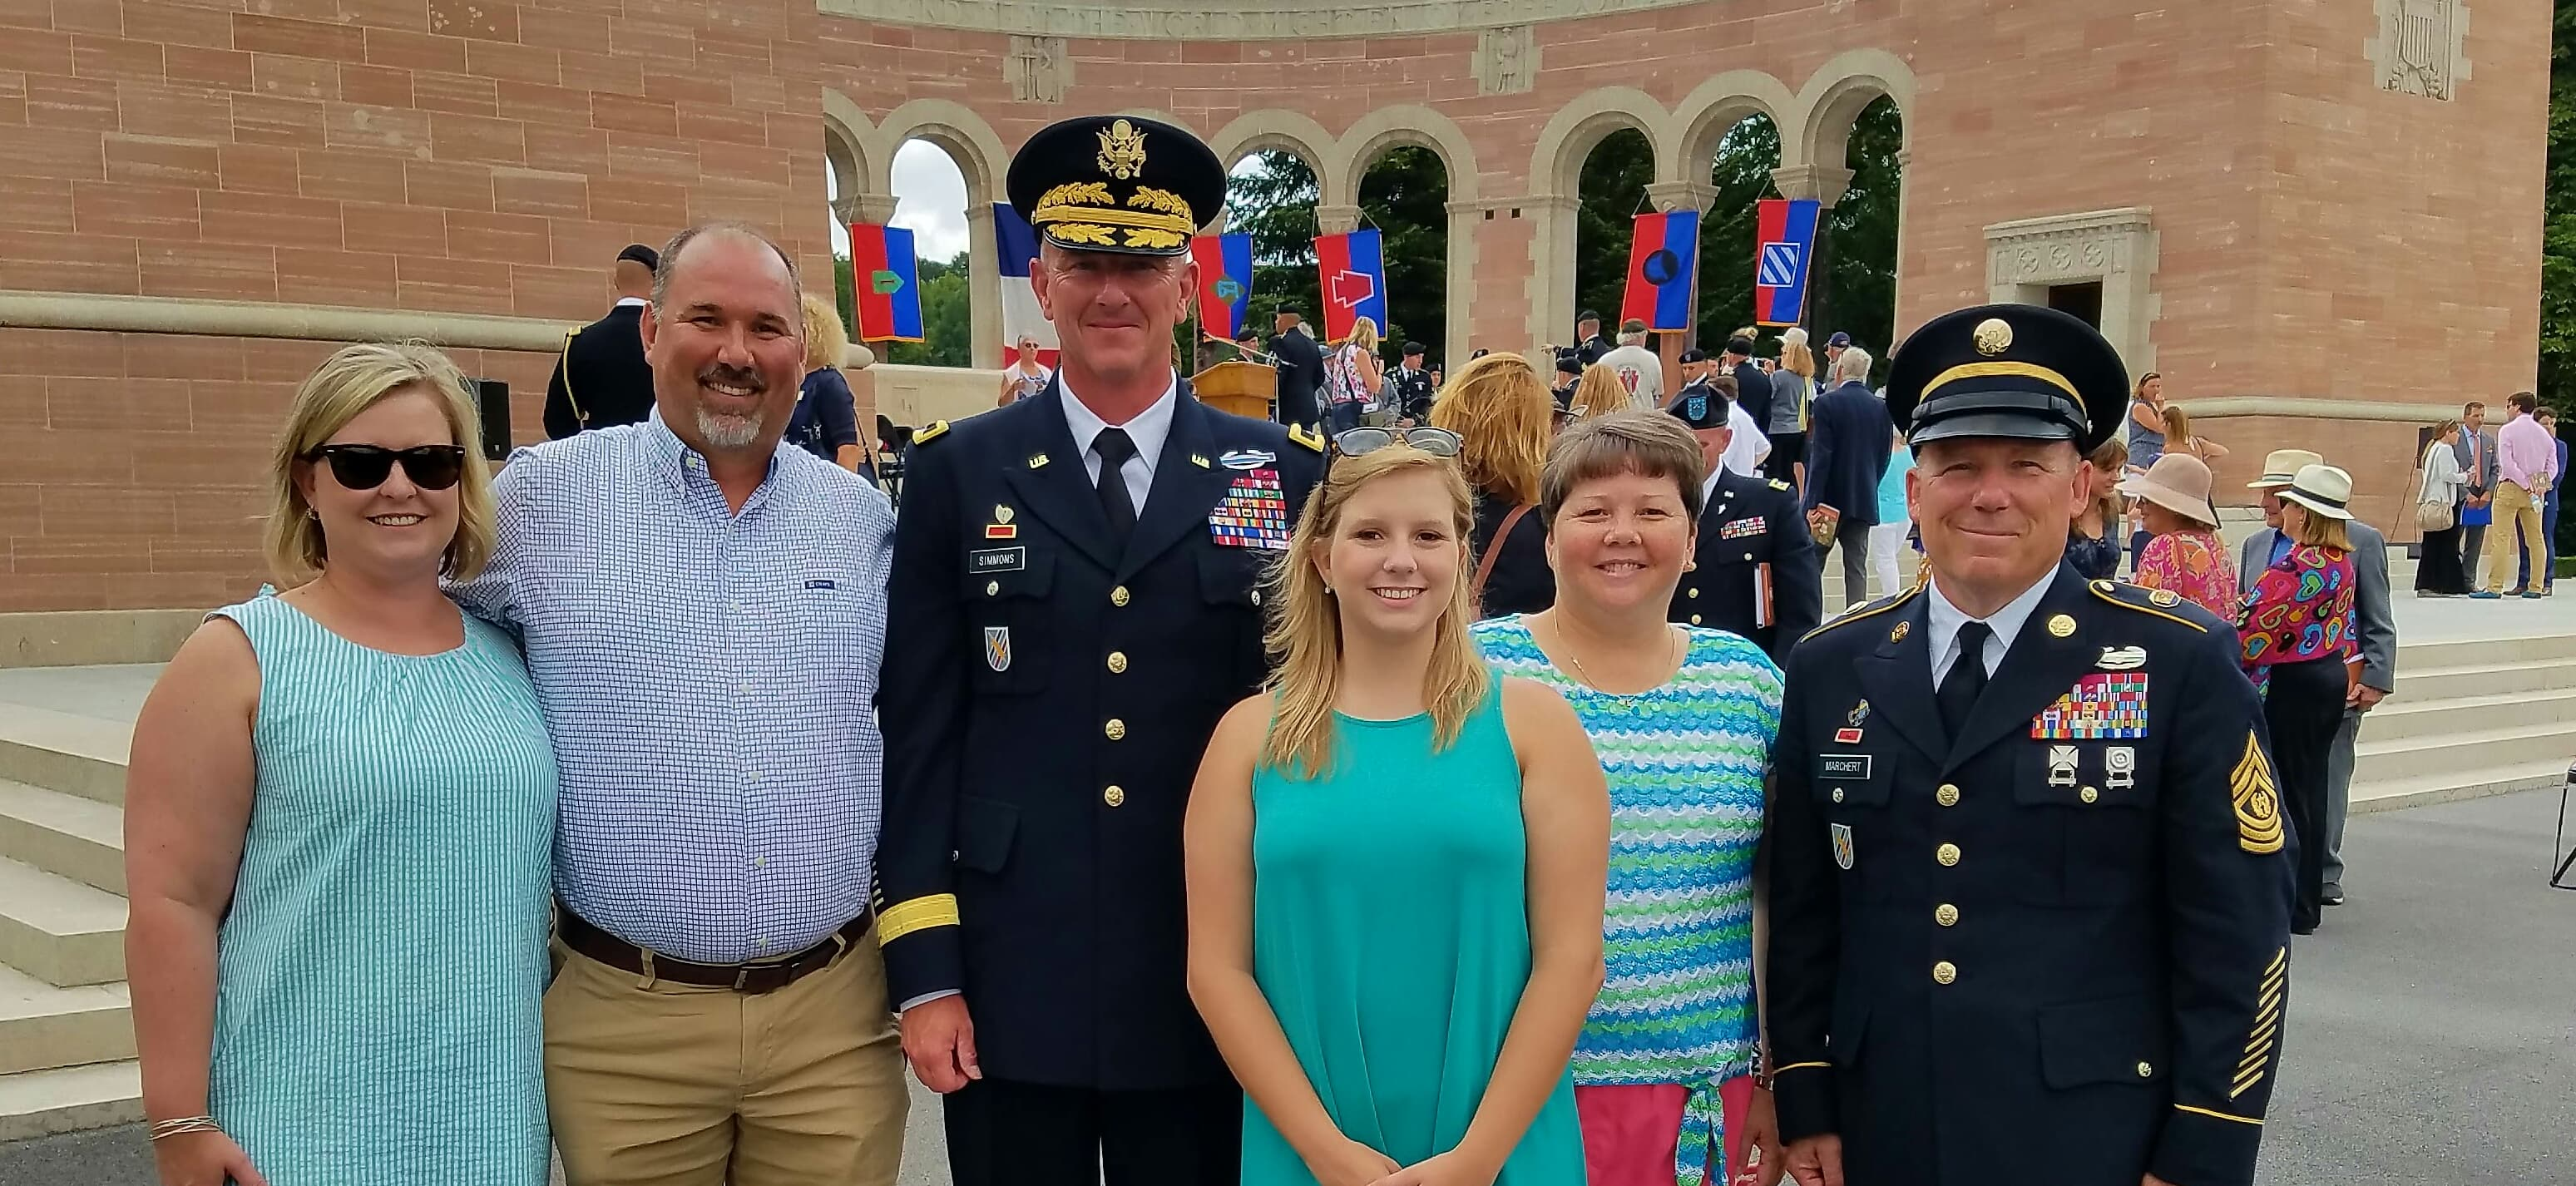 Brooklyn Reese and traveling party in France with GA National Guard officials